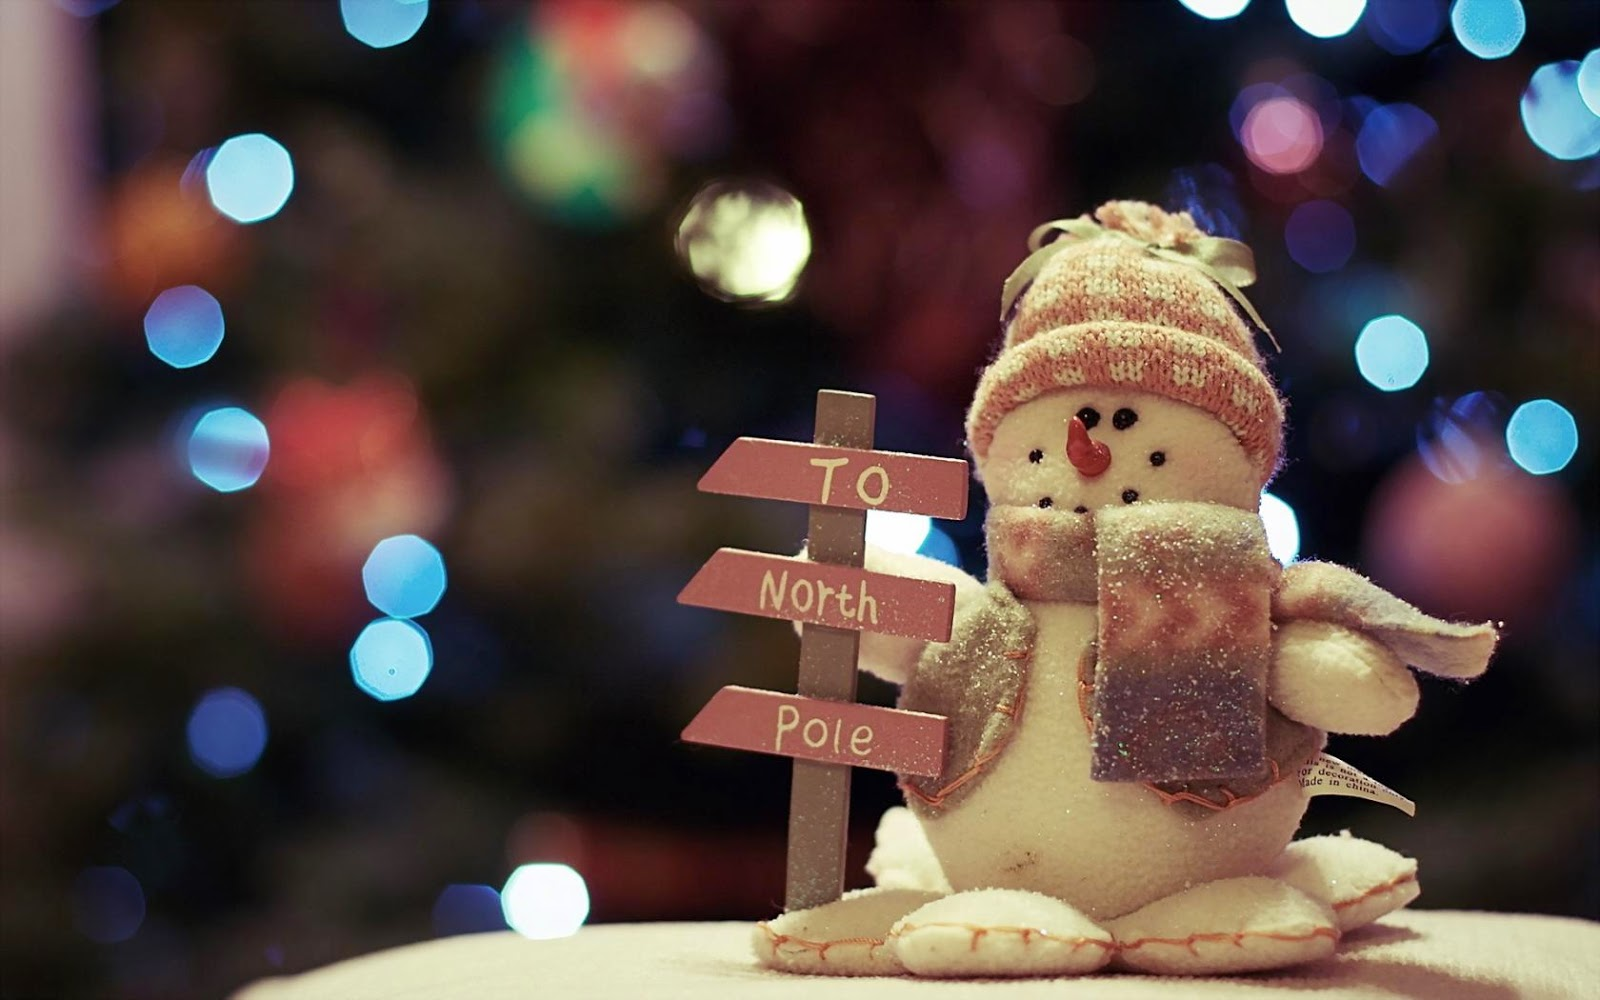 To-north-pole-snowman-board-image-design-for-christmas.jpg